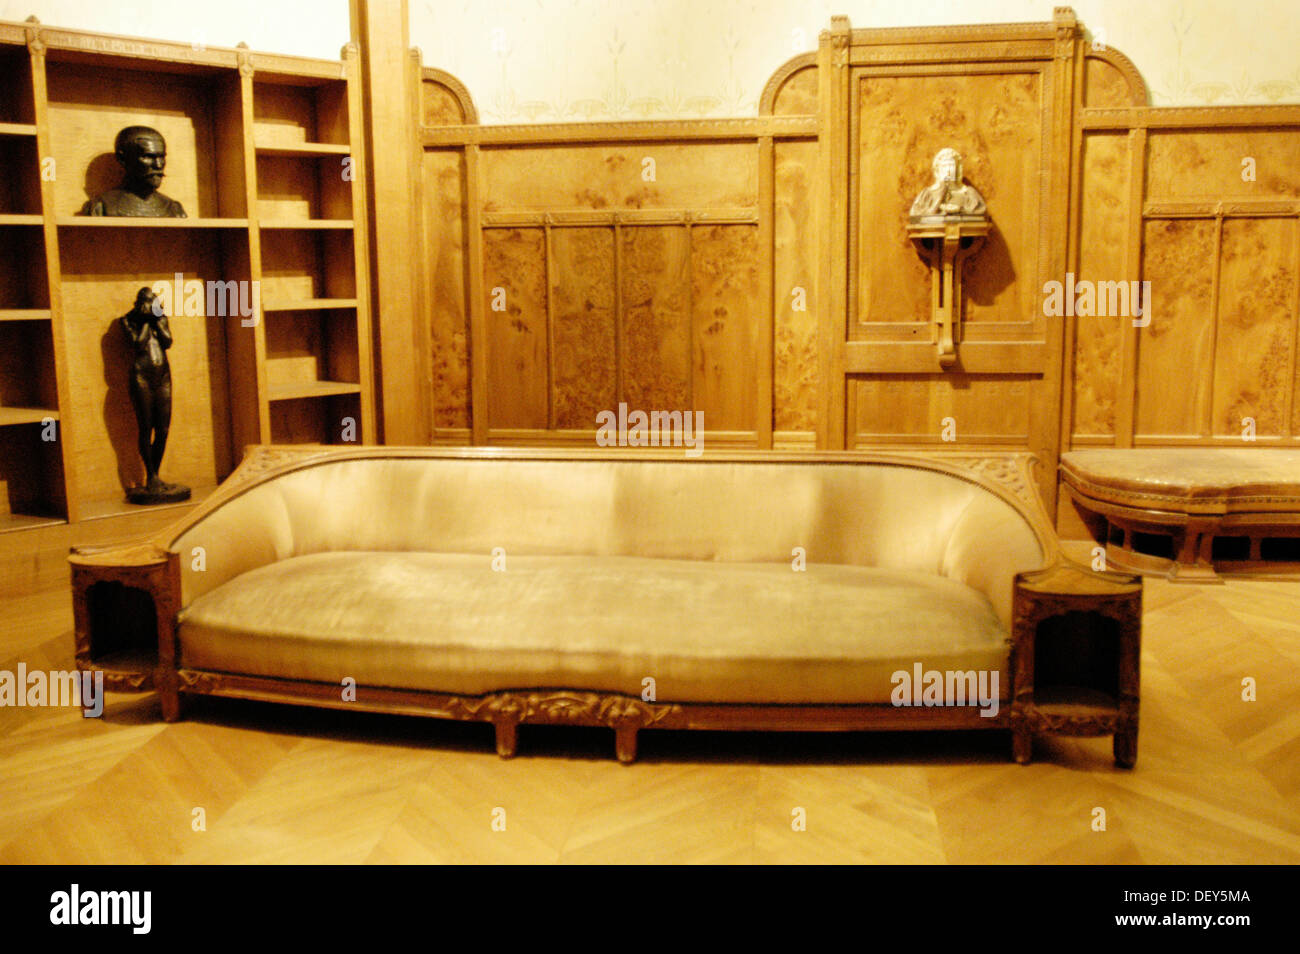 Art nouveau style furniture - Art Nouveau Style Furniture Orsay Museum Paris France Stock Image